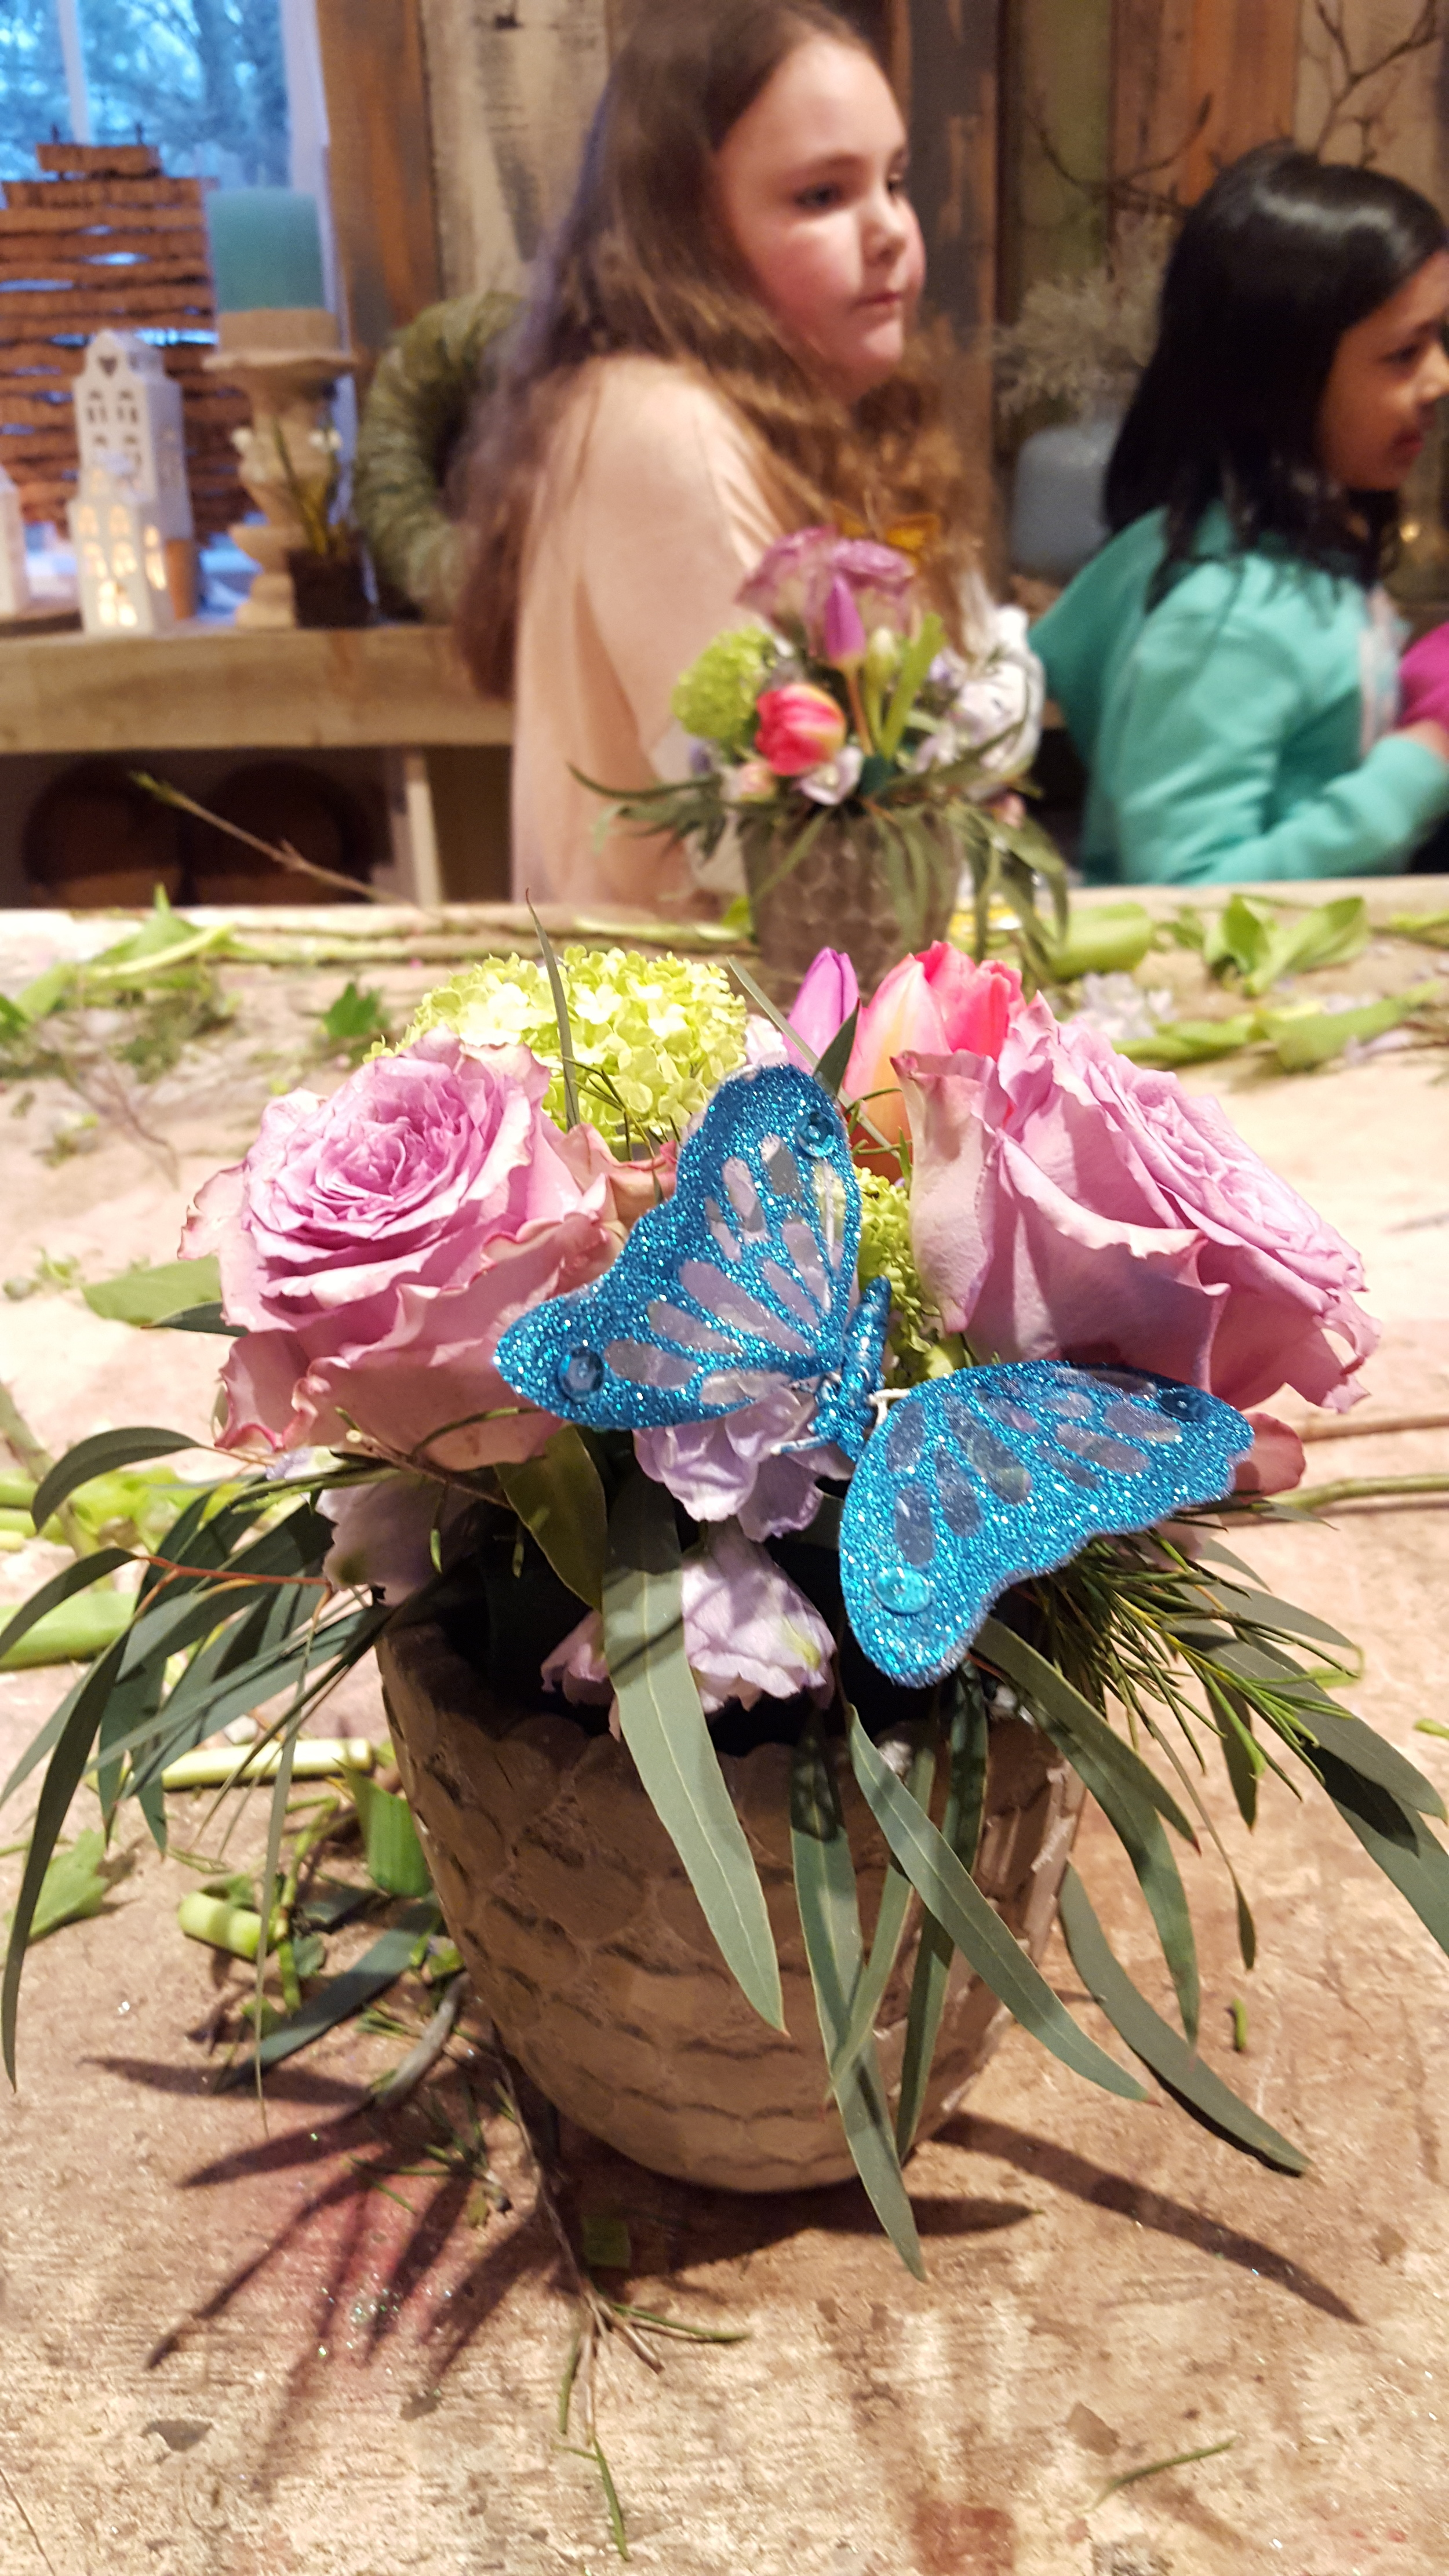 Adding pretty extras to the design. All in One Season Dutch floral party workshop